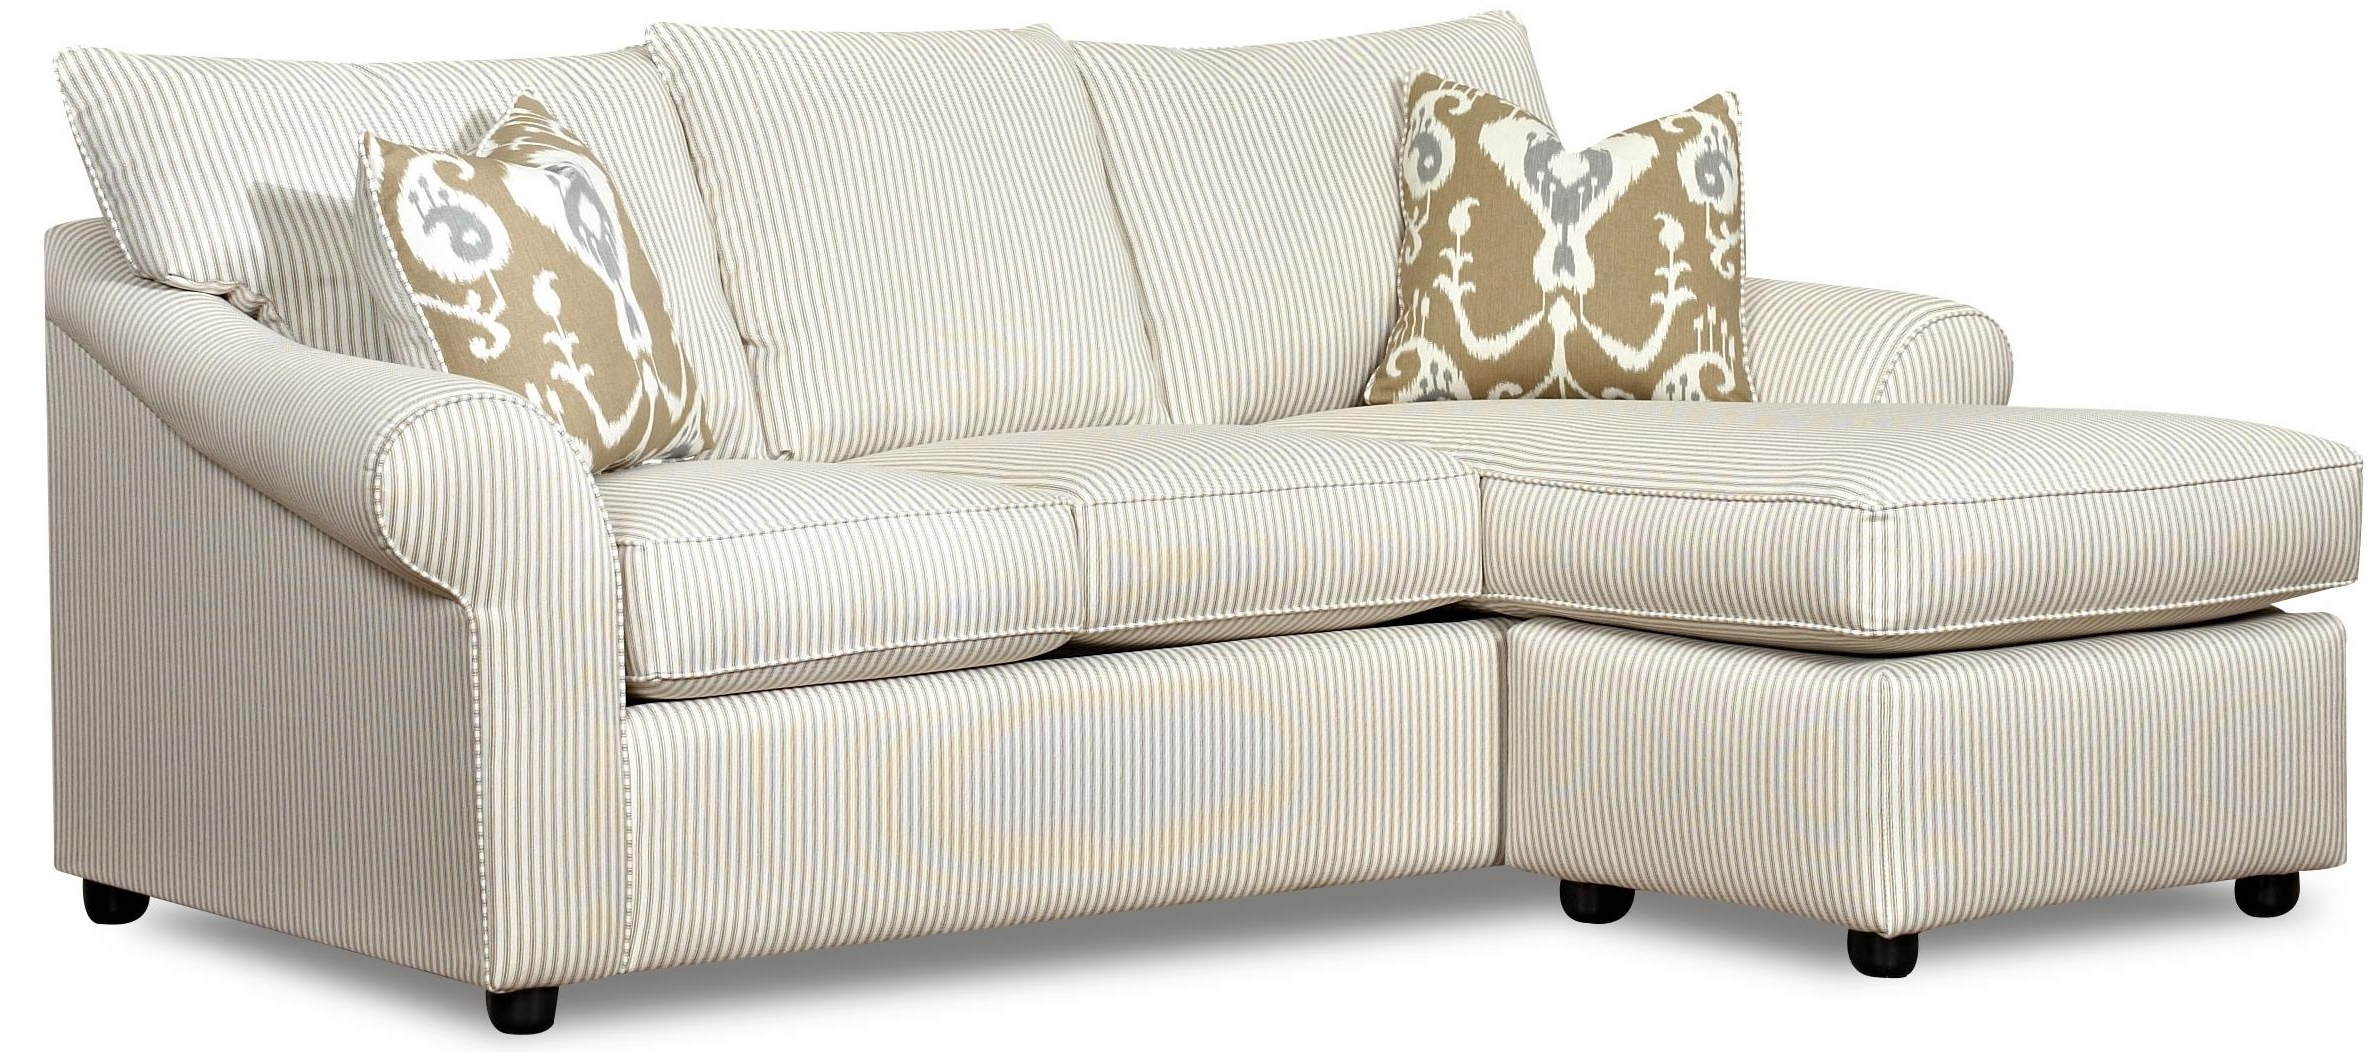 Well Liked Chaise Lounge Benchs For Sofa With Reversible Chaise Loungeklaussner (View 8 of 15)